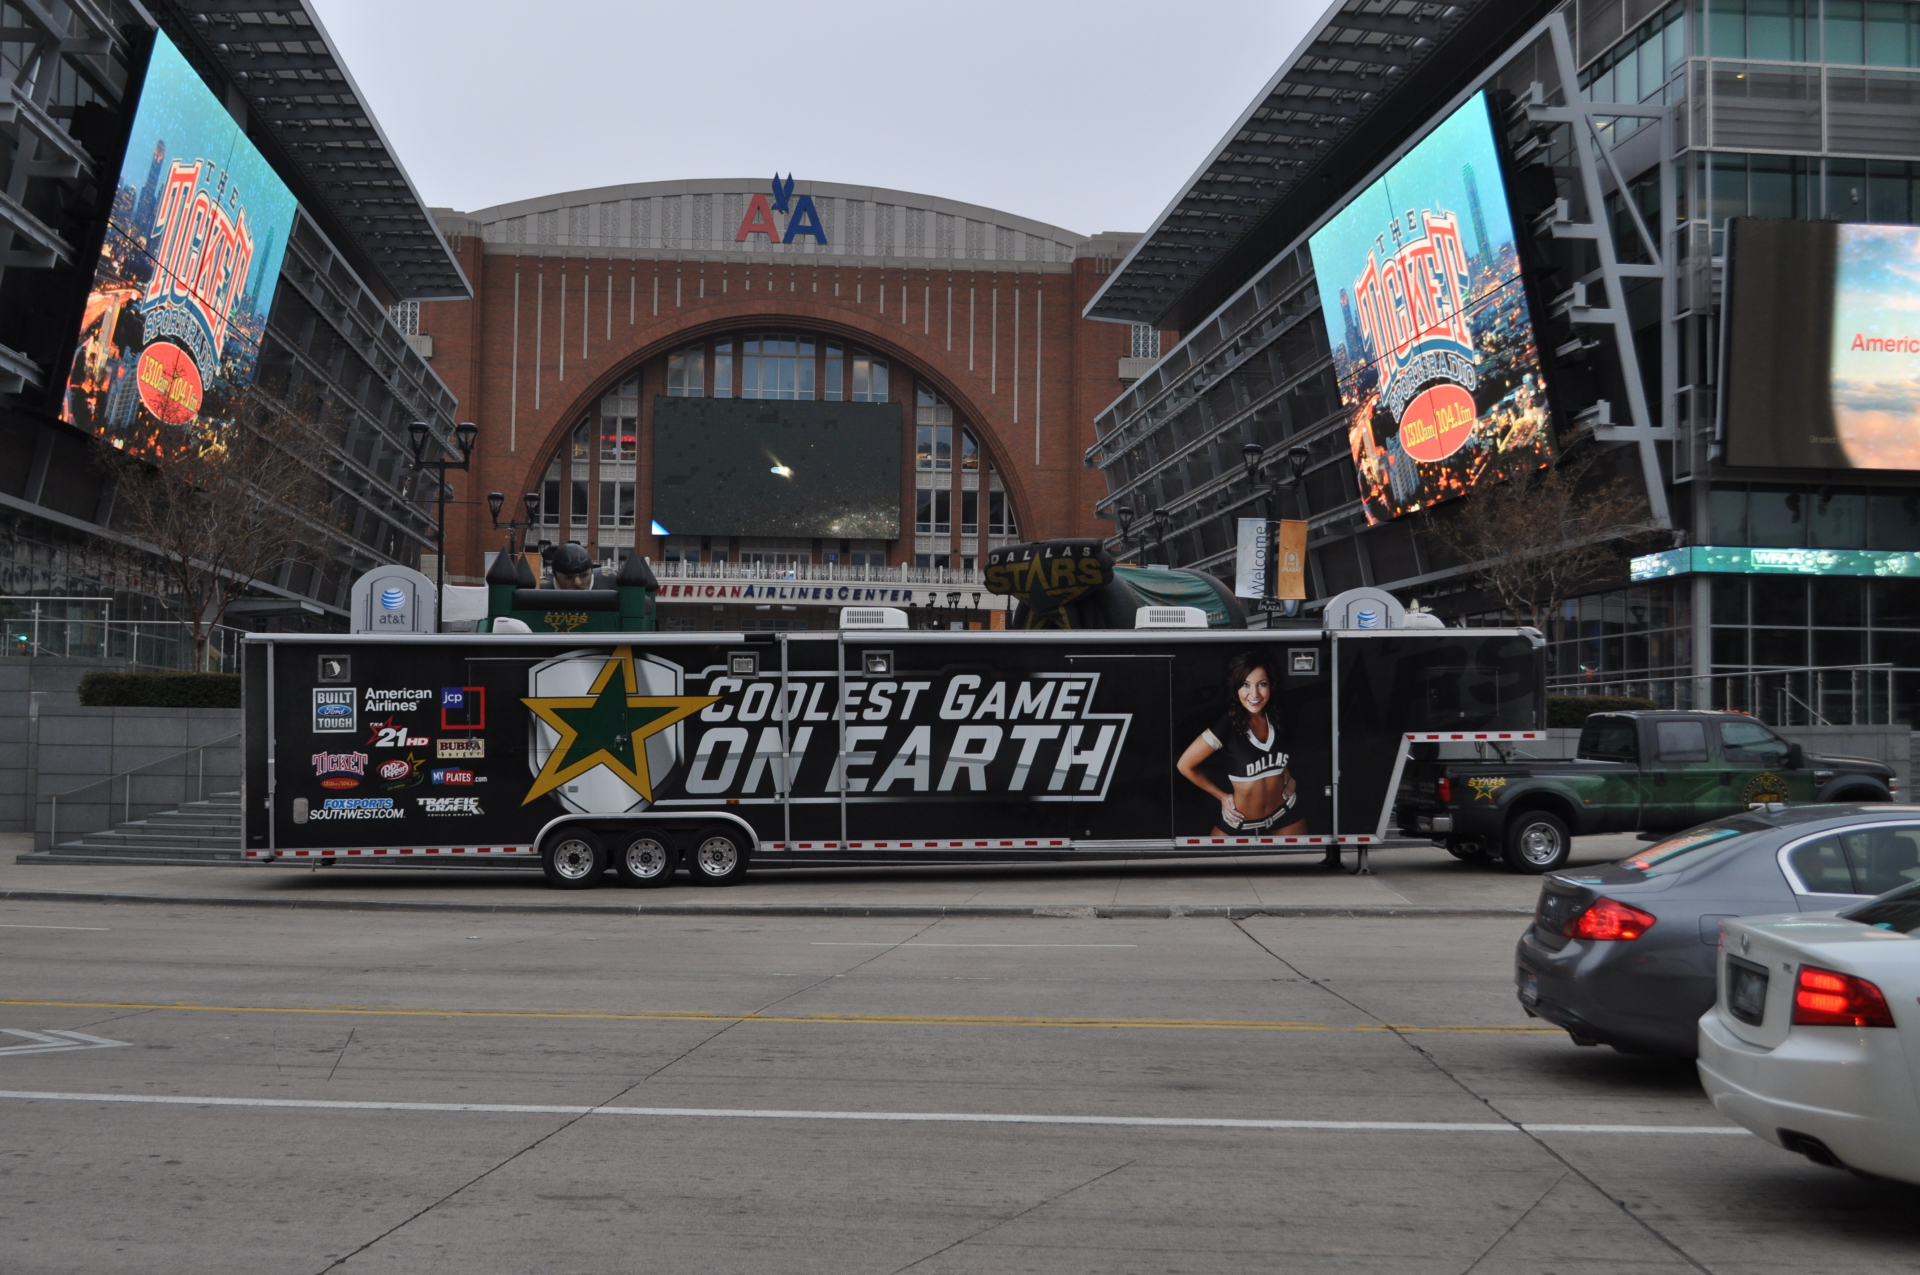 Dallas Stars Trailer Wrap American Airlines Center Dallas Ft Worth Texas